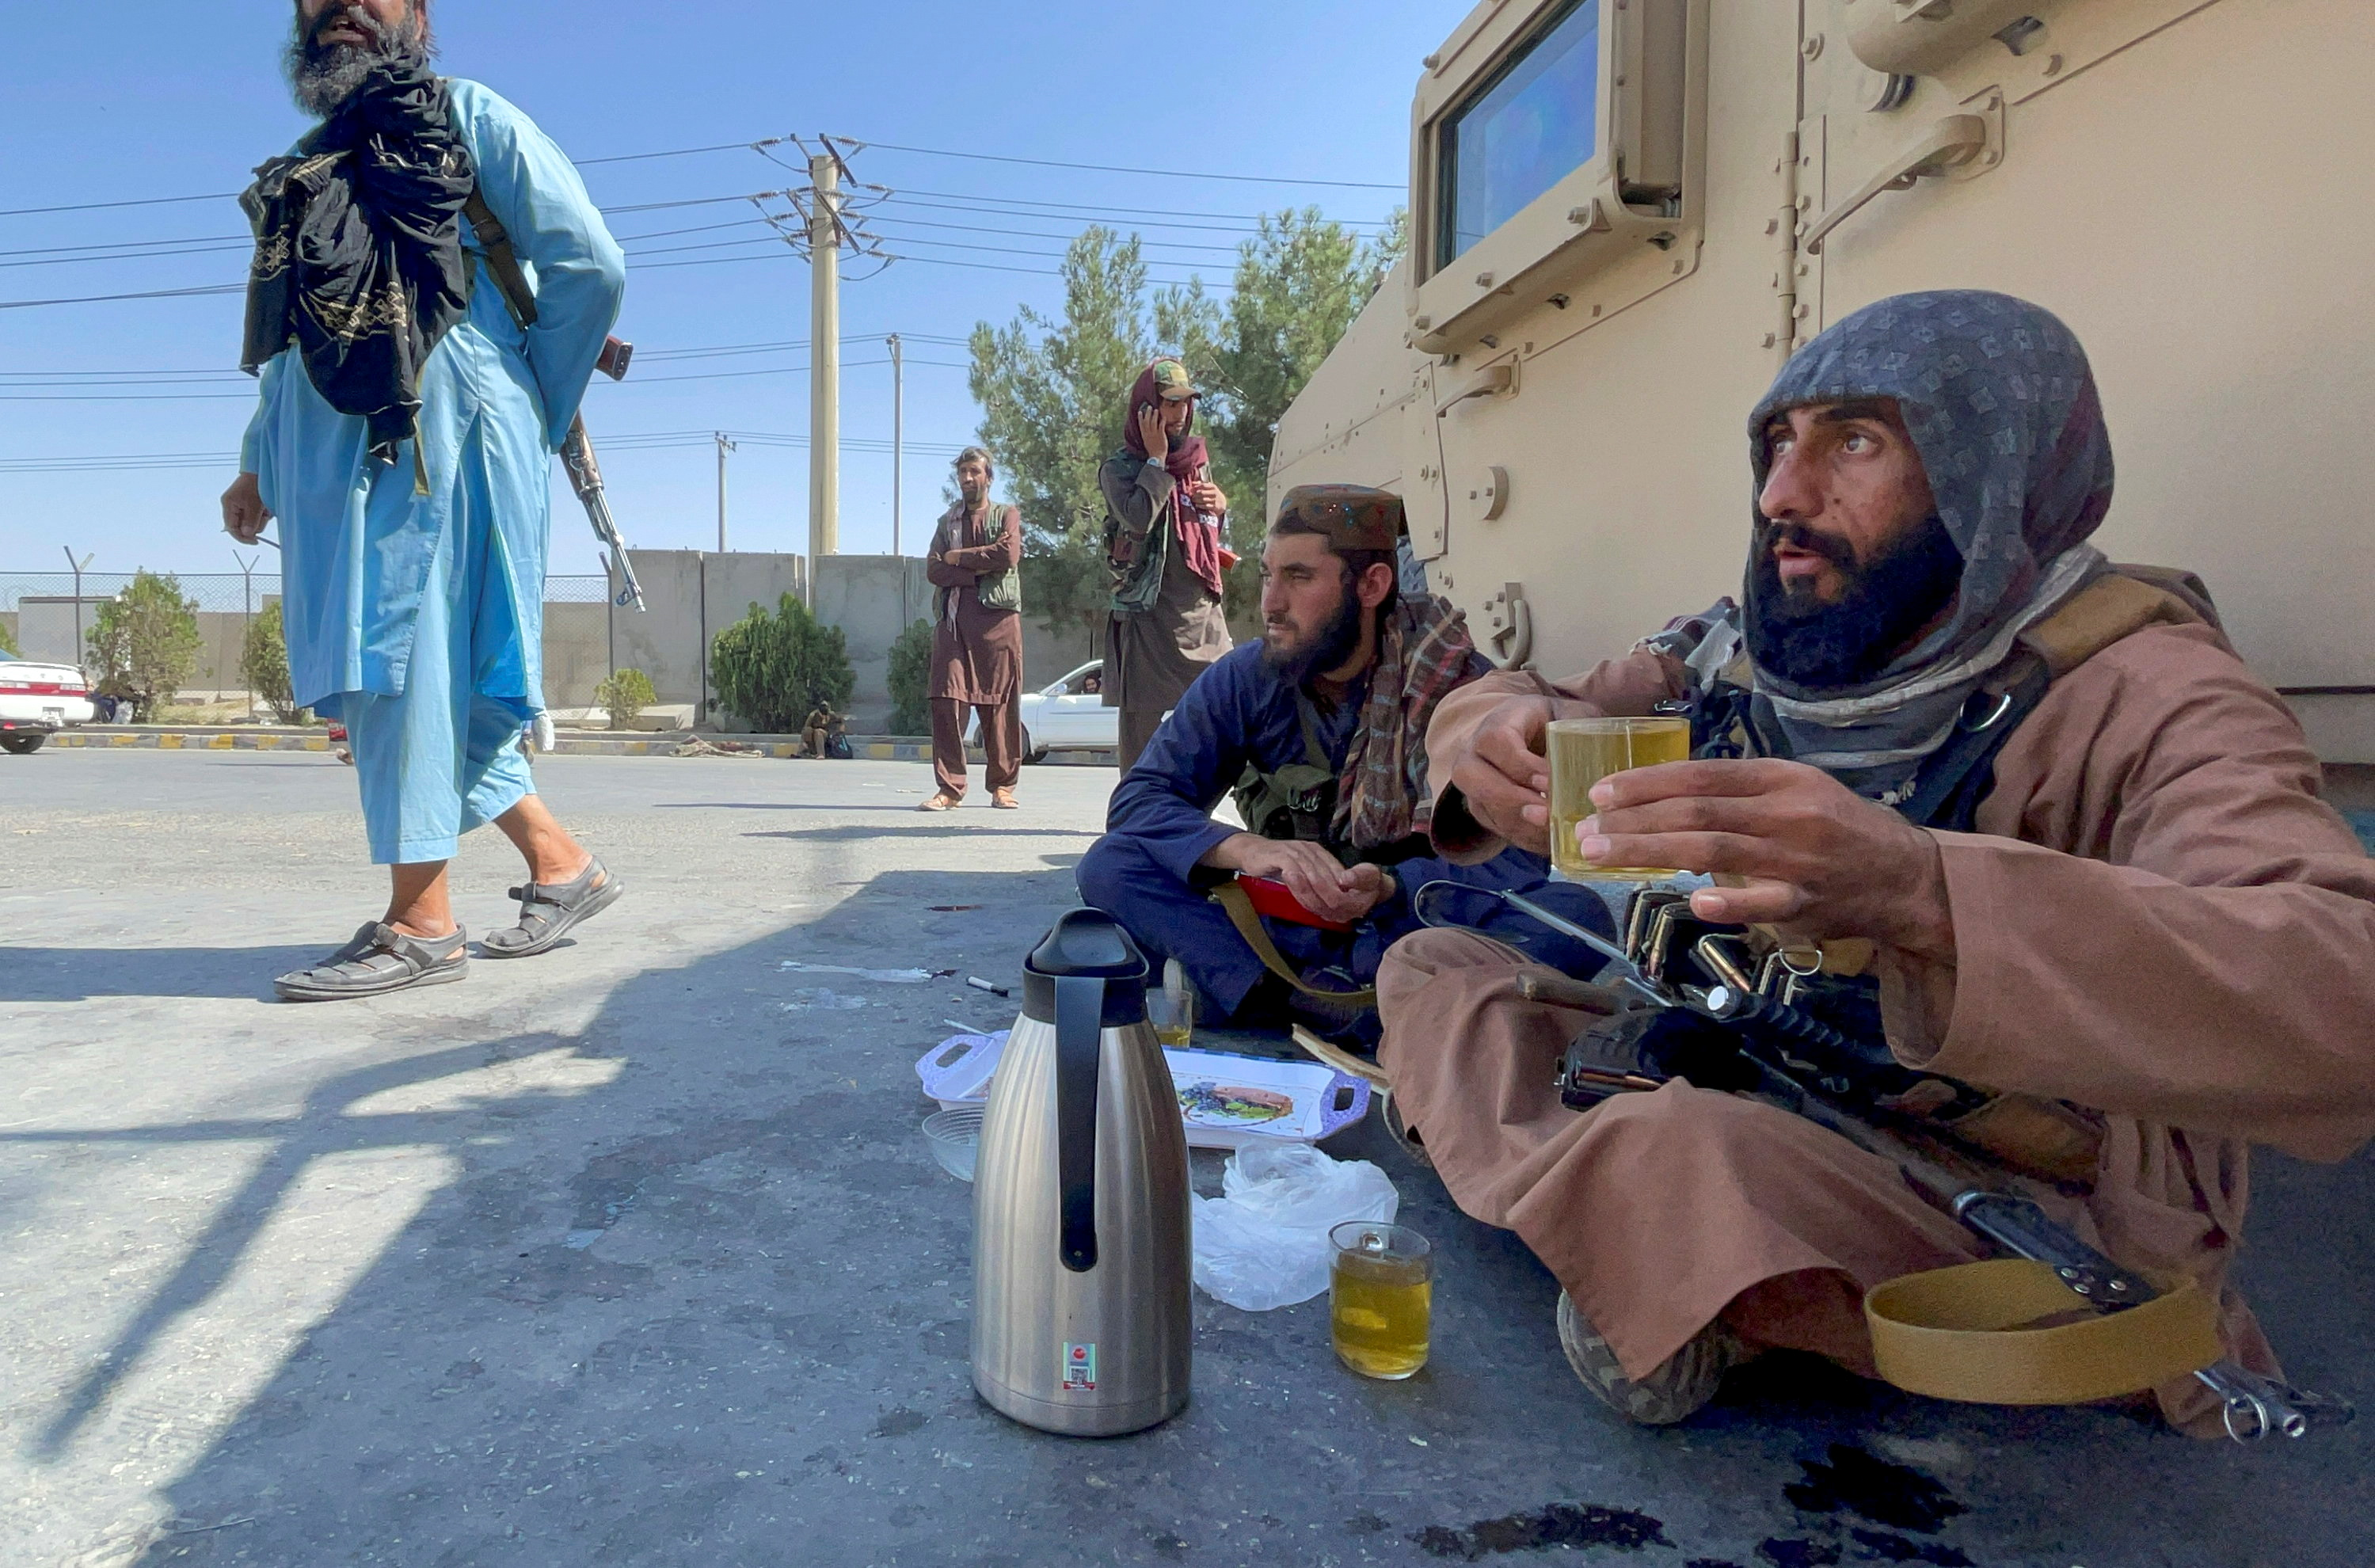 Armed Taliban men drink tea as Taliban forces block the roads around the airport after yesterday's explosions in Kabul, Afghanistan August 27, 2021. REUTER/Stringer